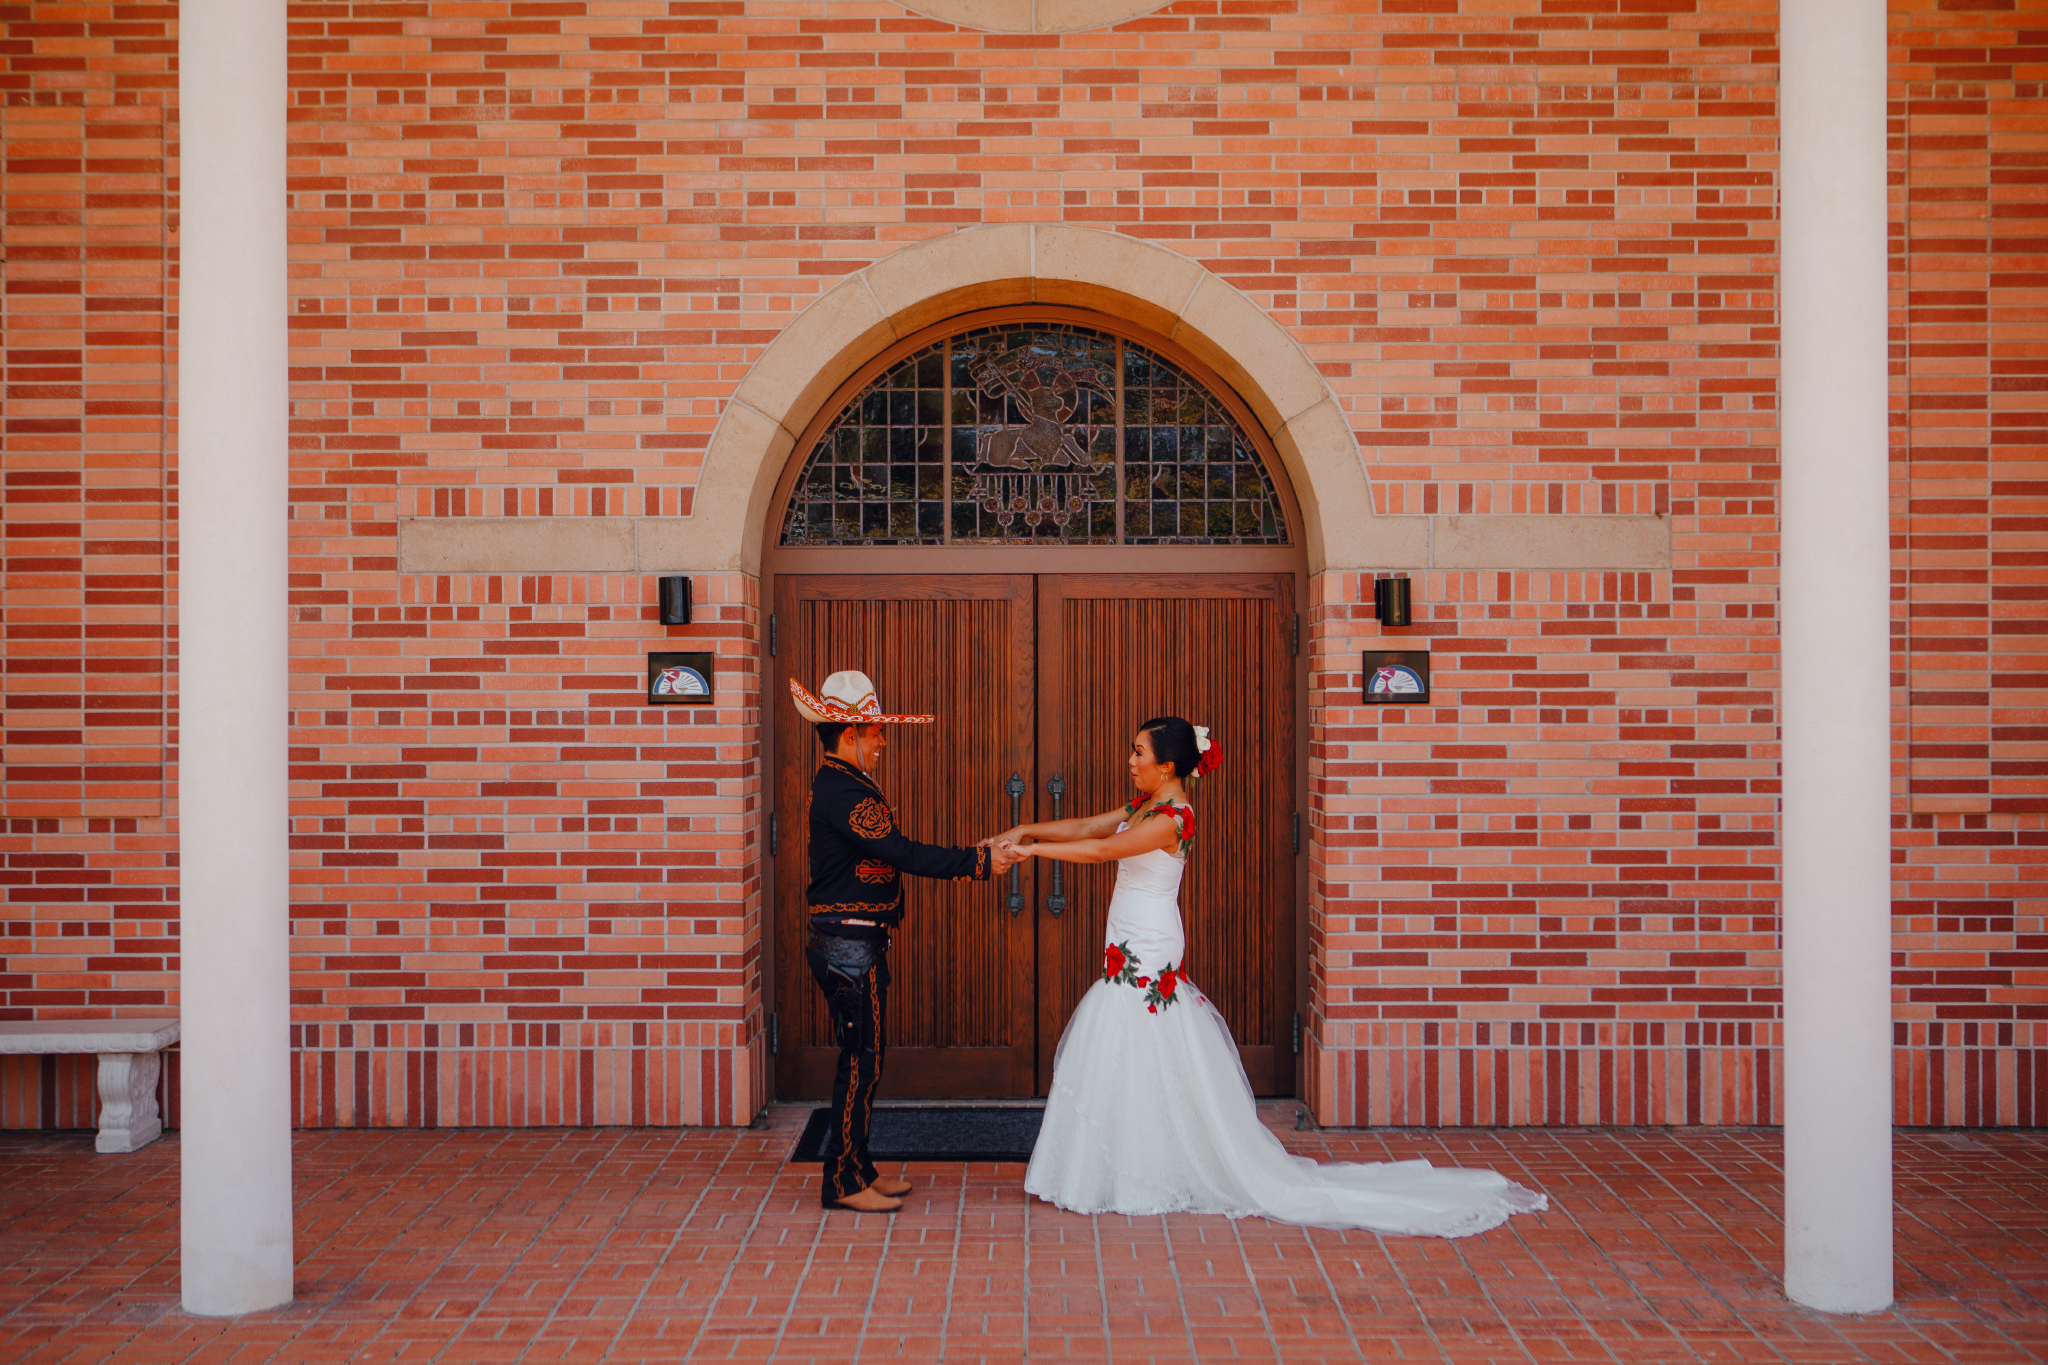 San Diego Wedding Photographer | Groom's reaction during first look at Torrey pines church